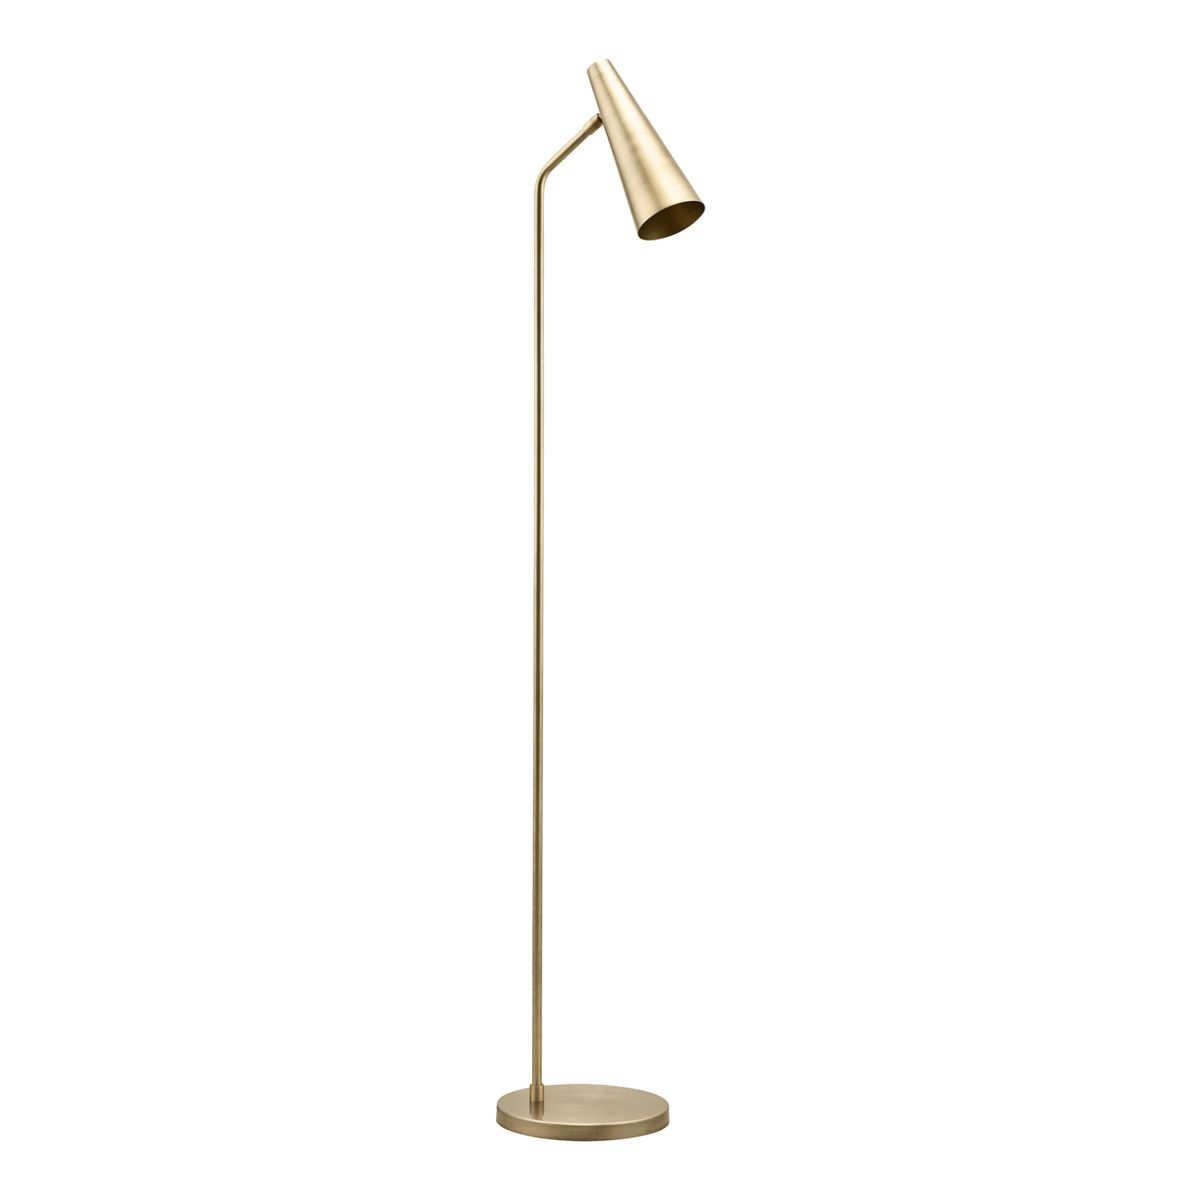 Image of House Doctor Precise lampe i messing - 124 cm